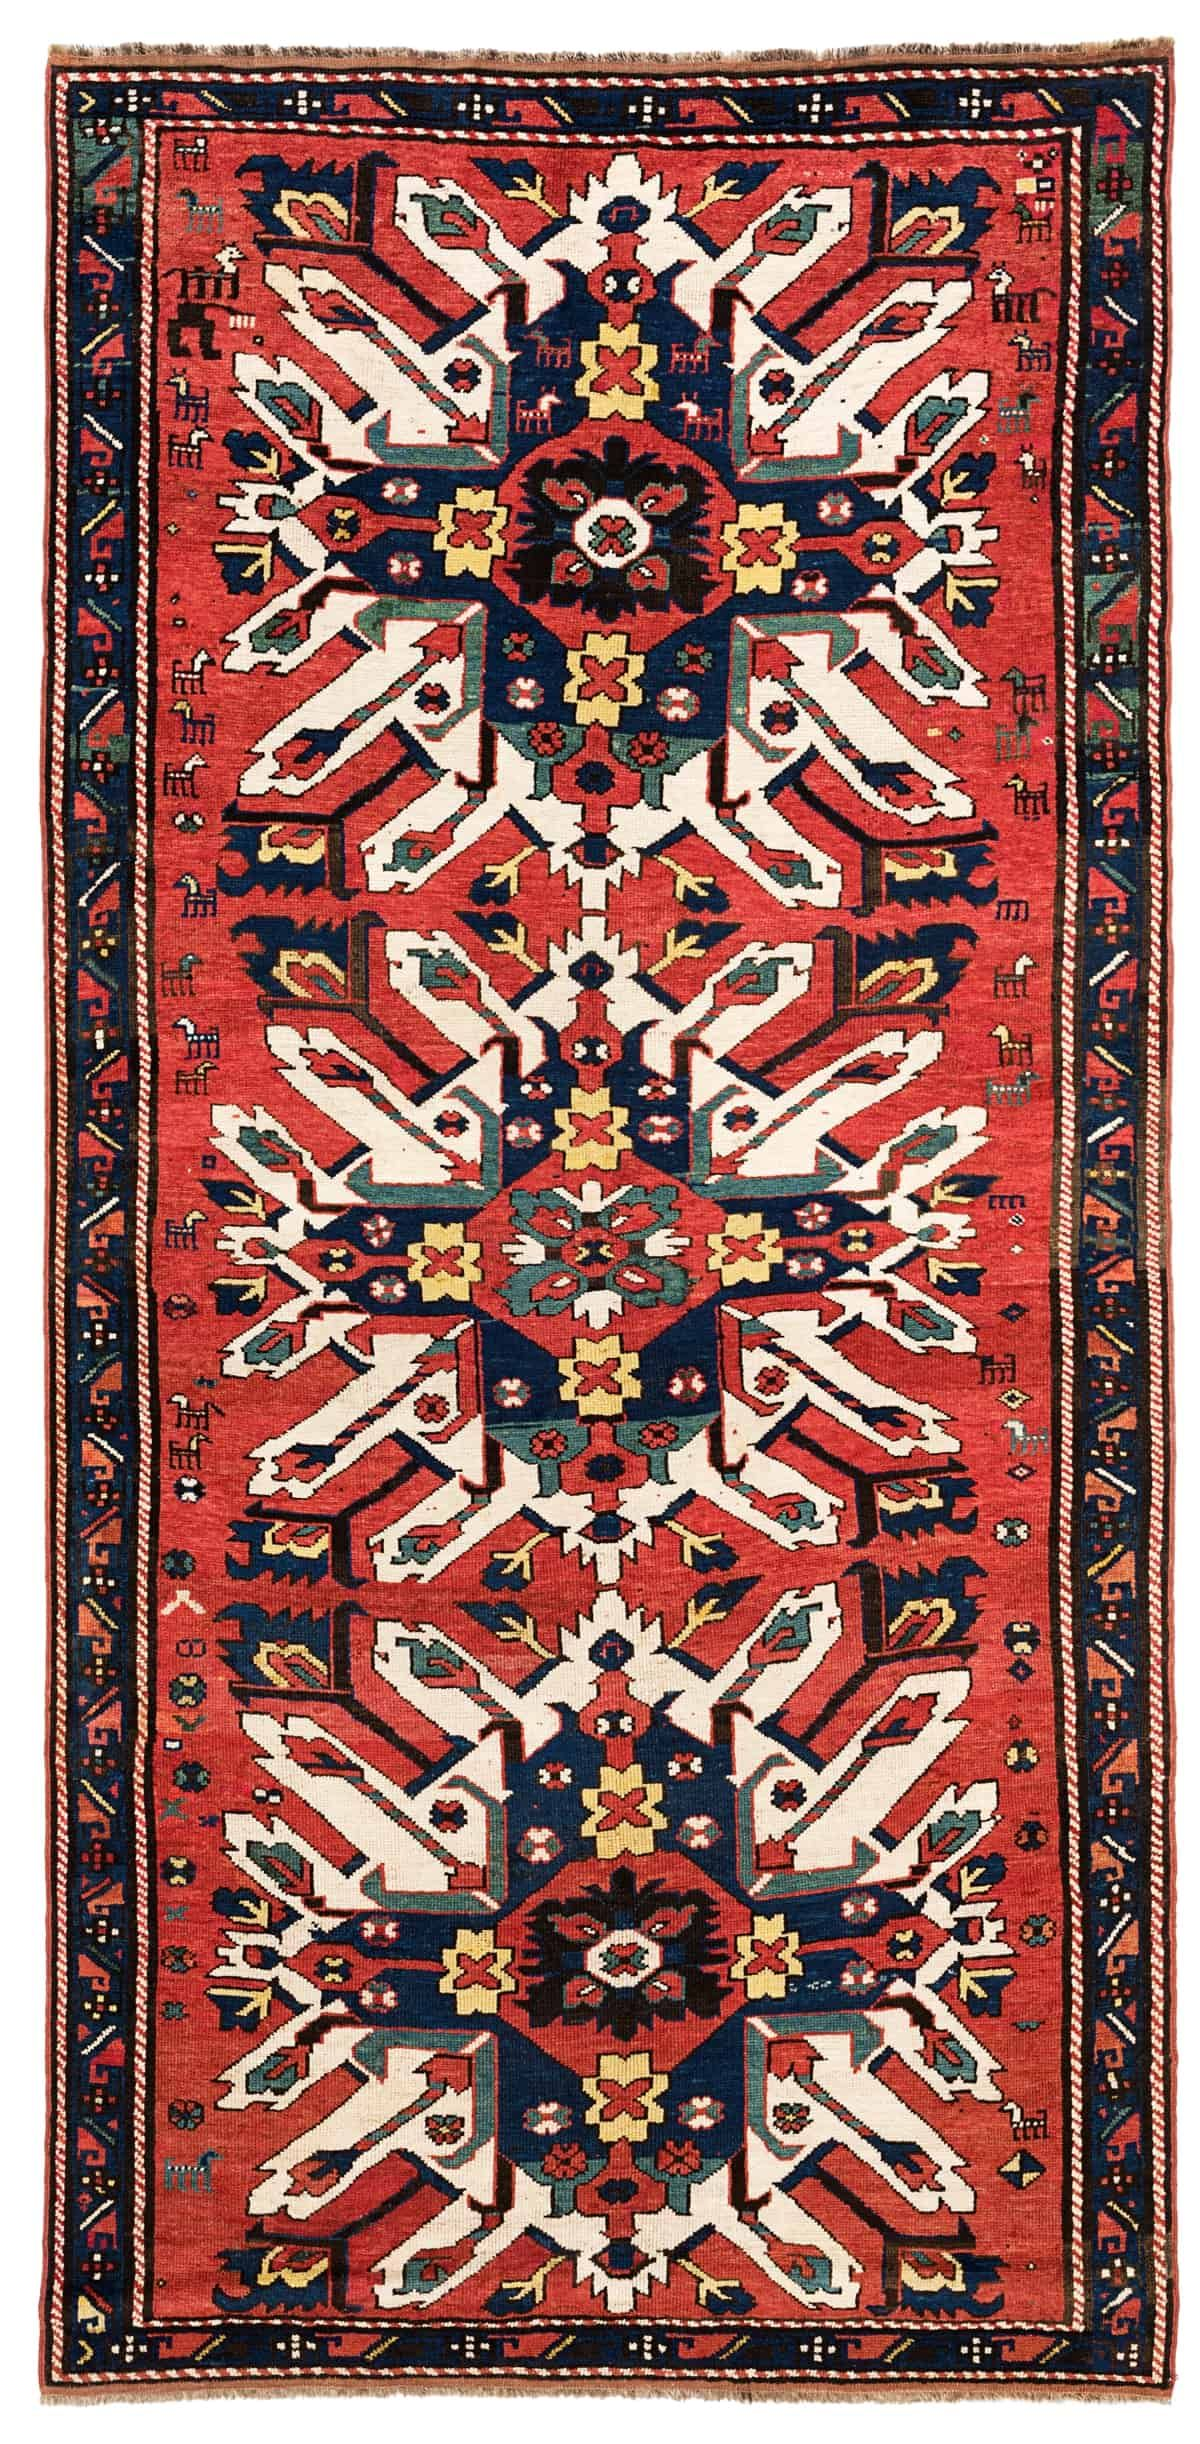 Collector Rugs At Austria Auction